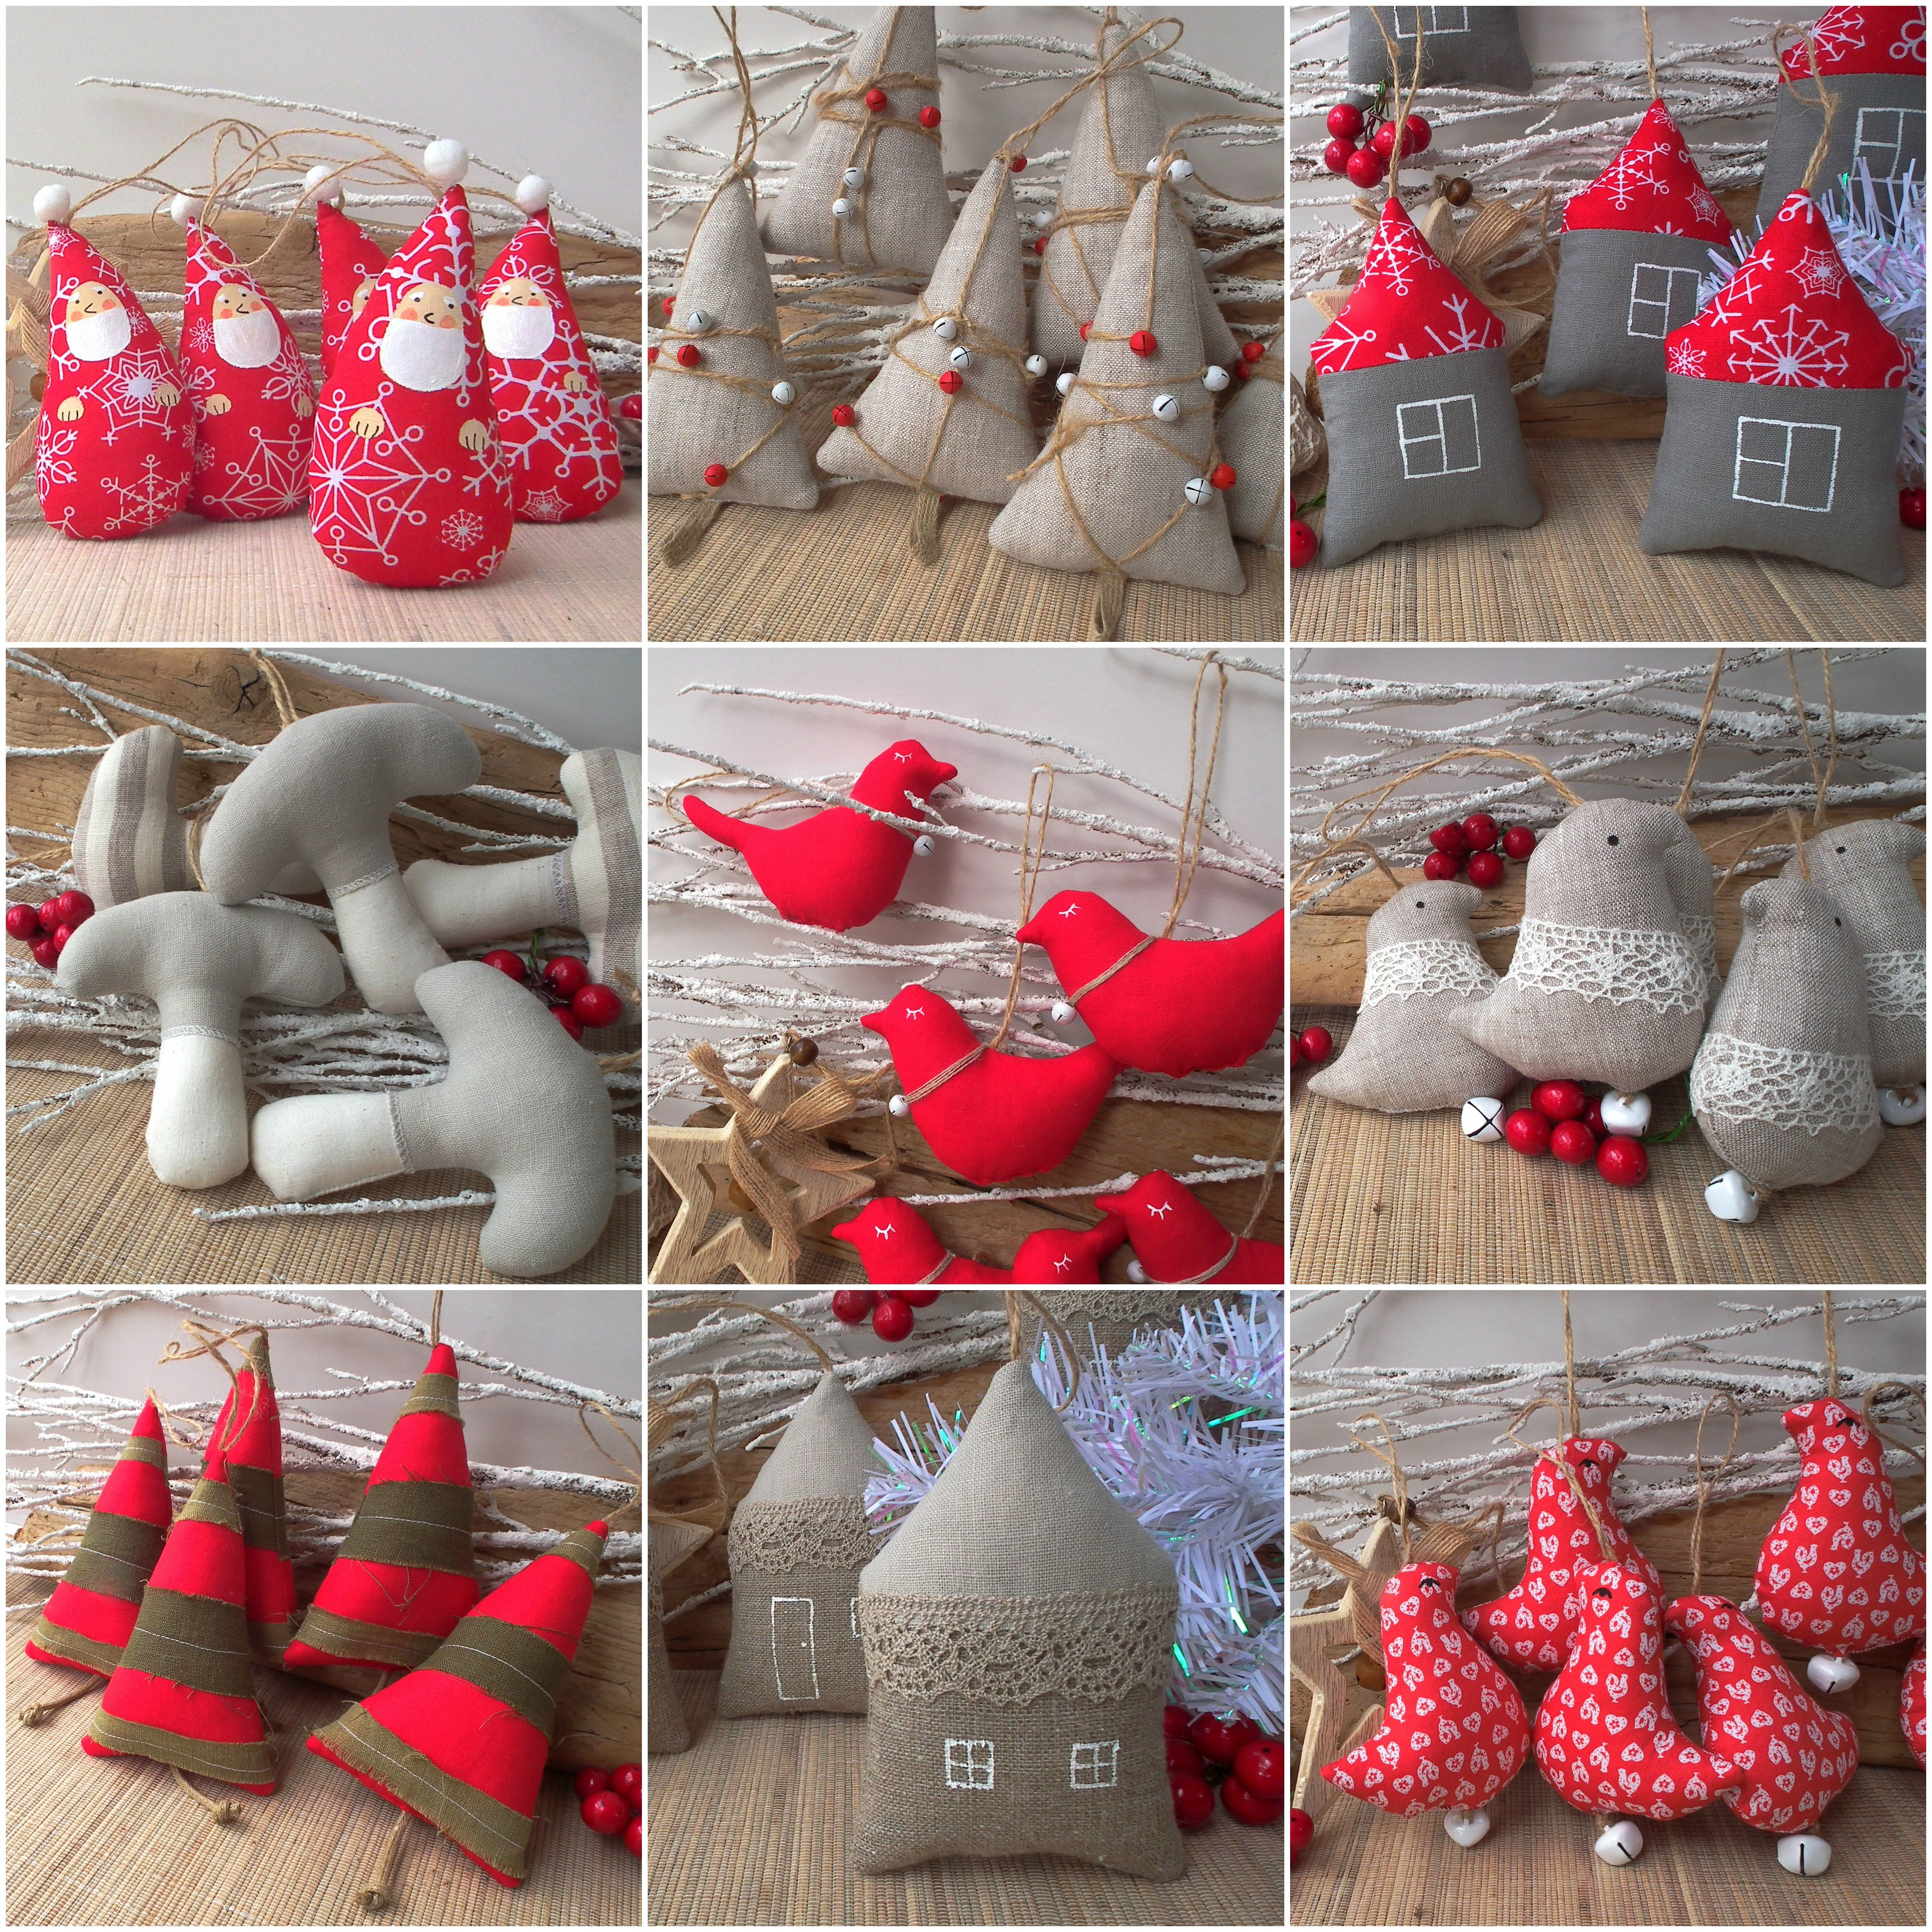 Rustic Christmas Tree Ornament By Cherrygardendolls Rustic Red Burlap Diy Christmas Tree Ornaments Pinterest Christmas Crafts Fabric Christmas Ornaments